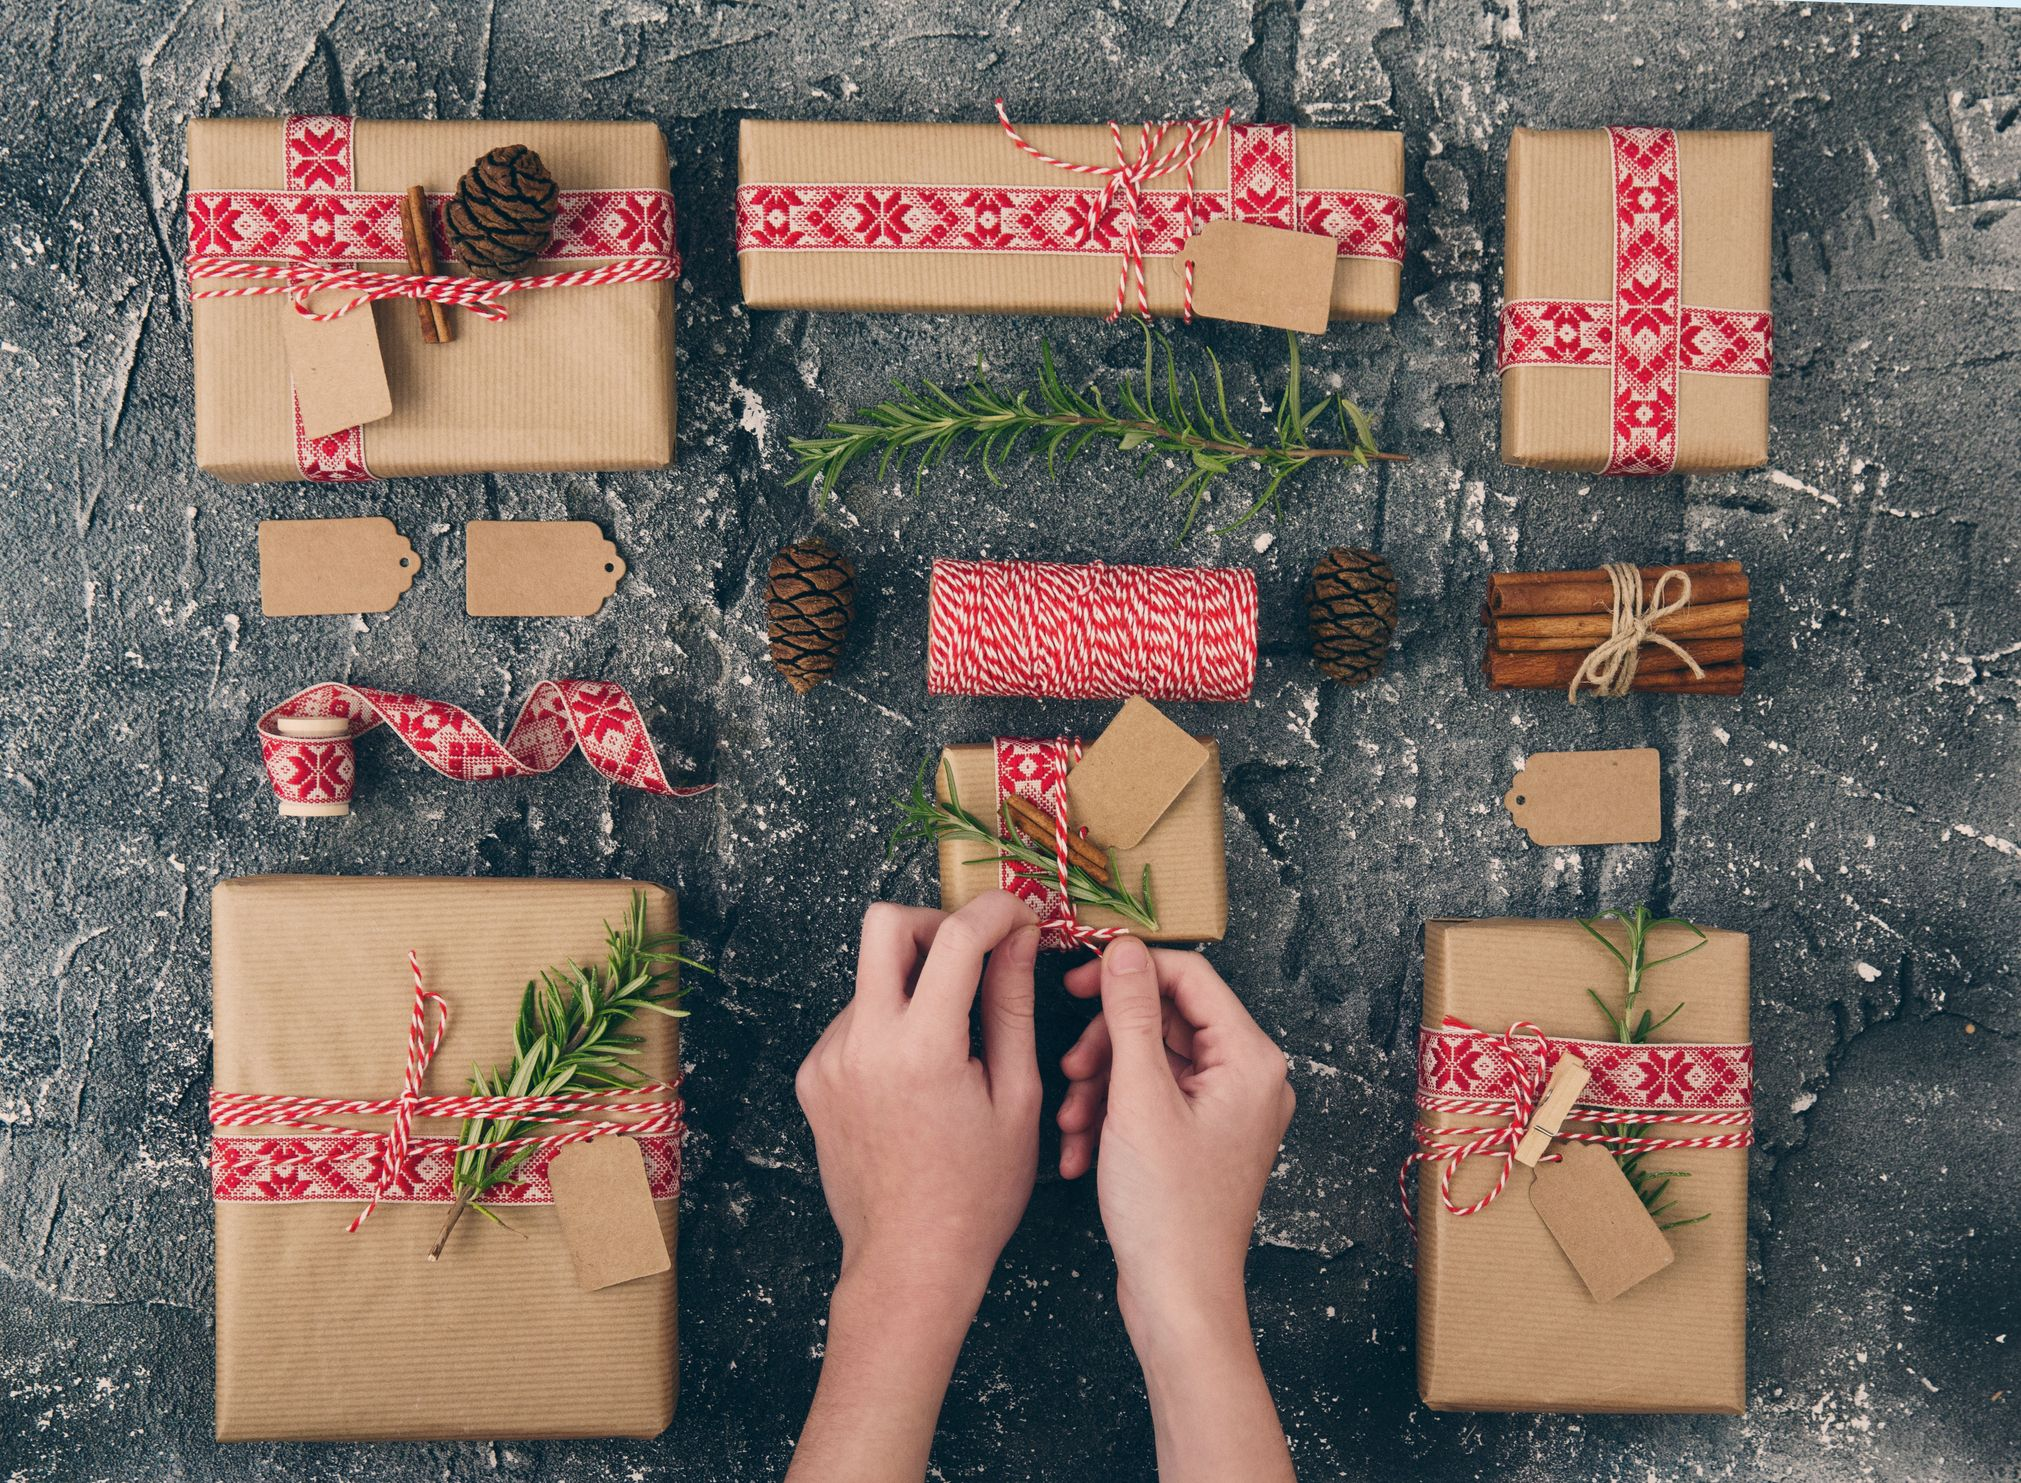 44 Best Gift Wrapping Ideas That'll Make Opening Christmas Presents Even More Fun